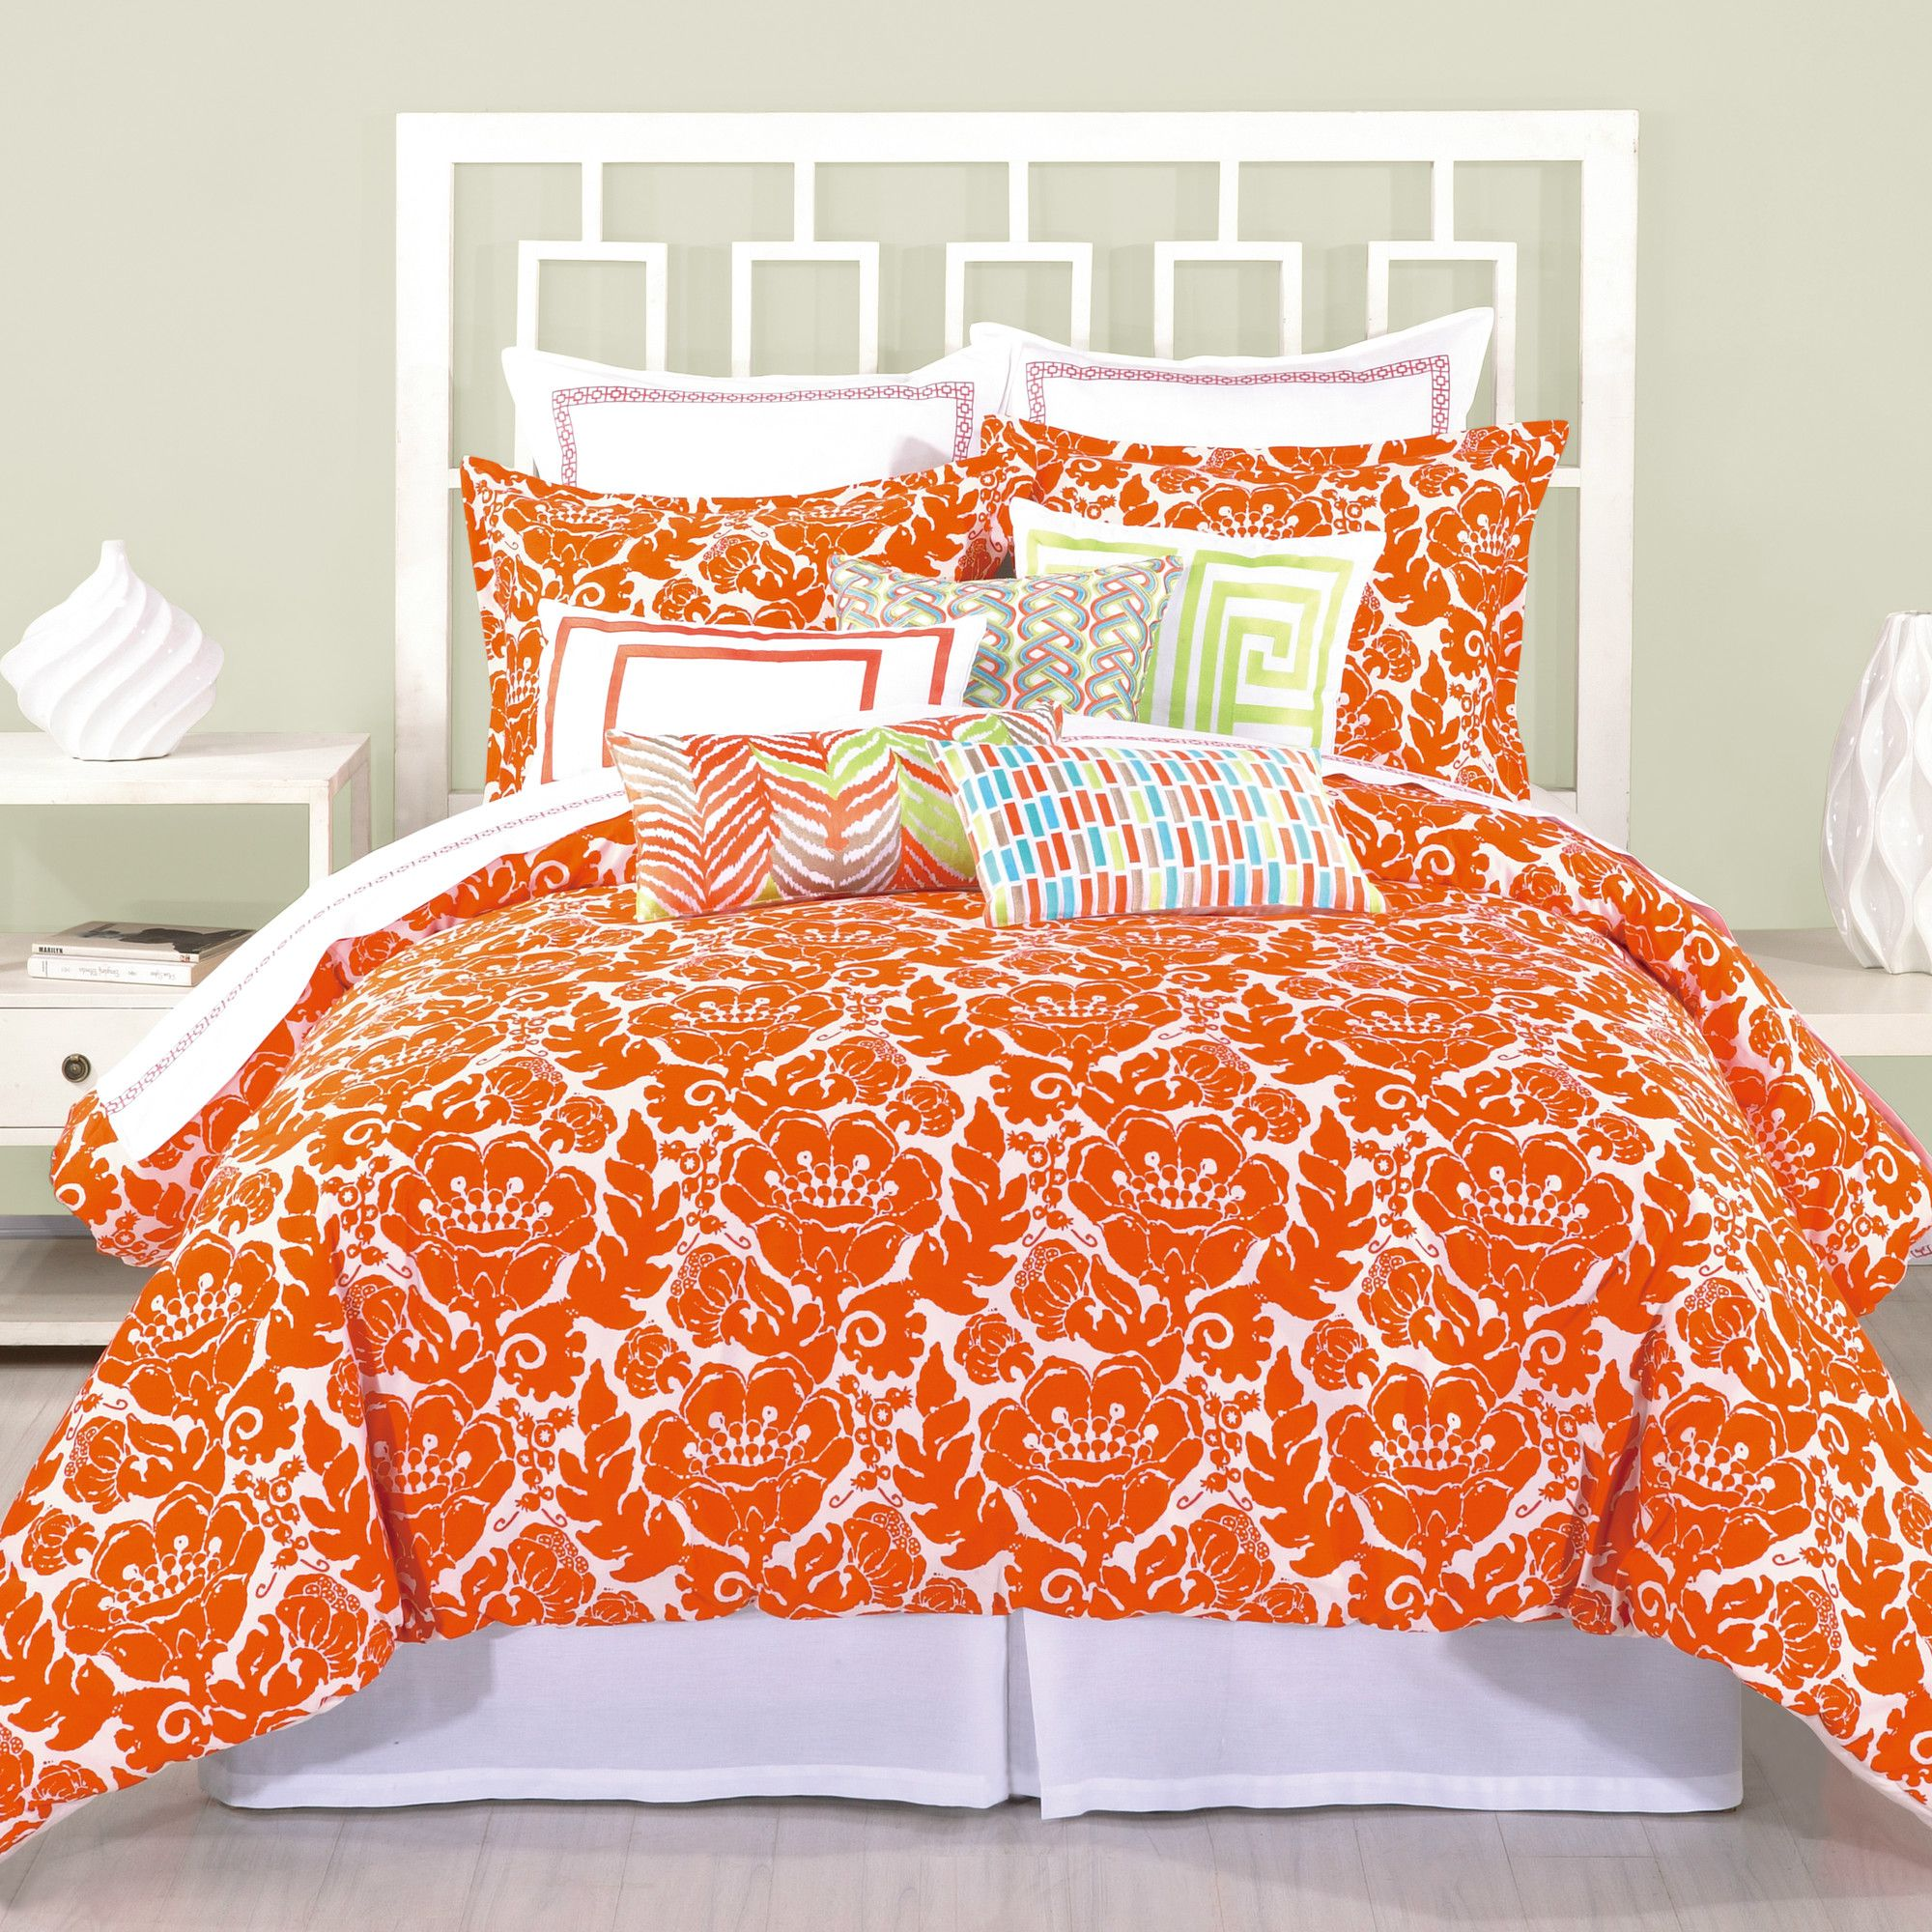 orange most twin to grey fantastic black white and navy for single comforter where california flannel quilt king plain size super blanket dimensions cover duvet bedding sets ding online find canada duvets of full pink interior covers burnt cotton queen designer set